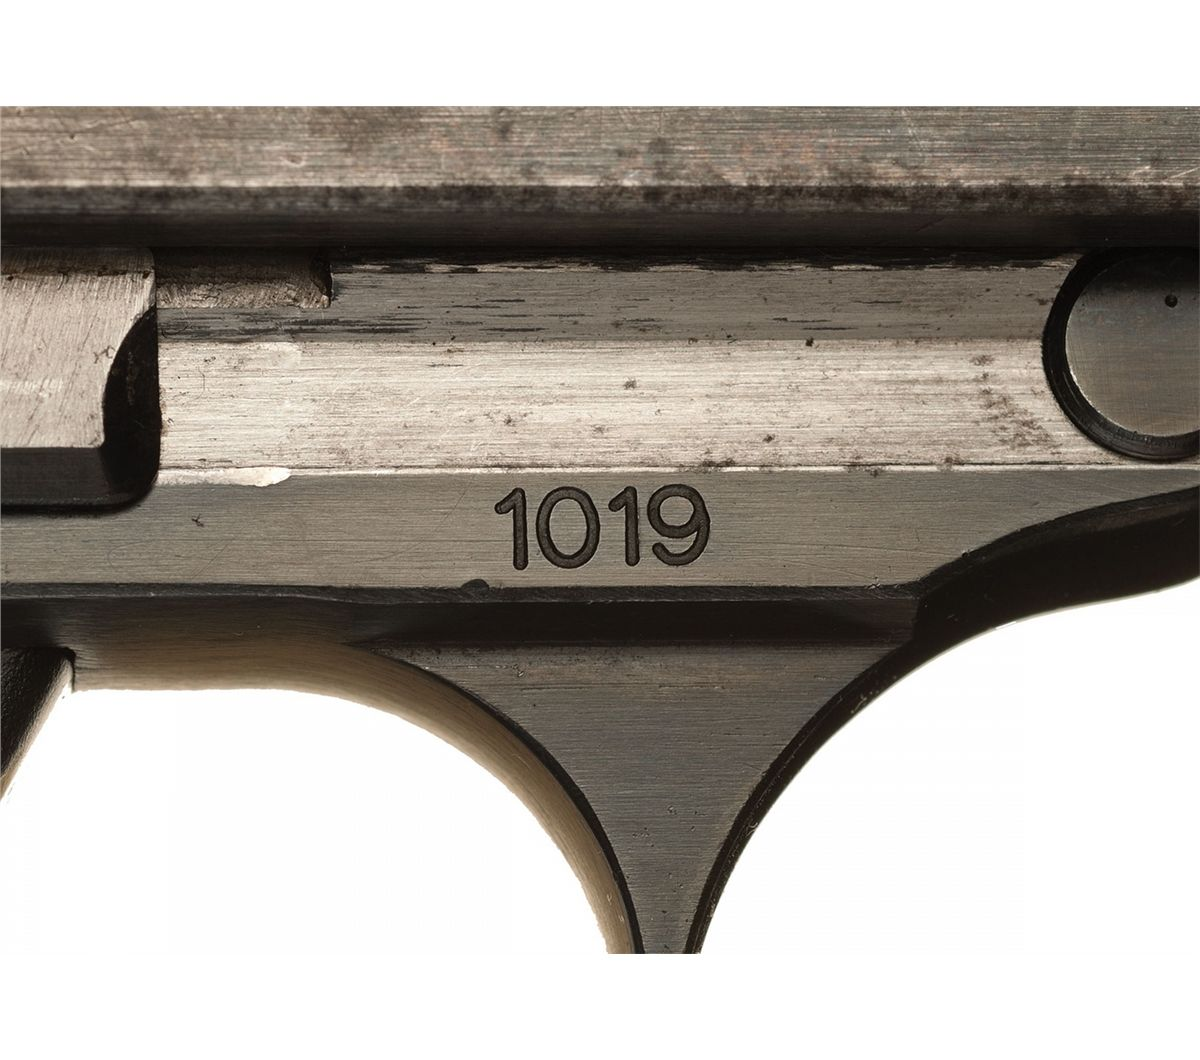 ... Image 3 : Extremely Rare Historic Serial Number 1019 Walther P38  Prototype Pistol ...